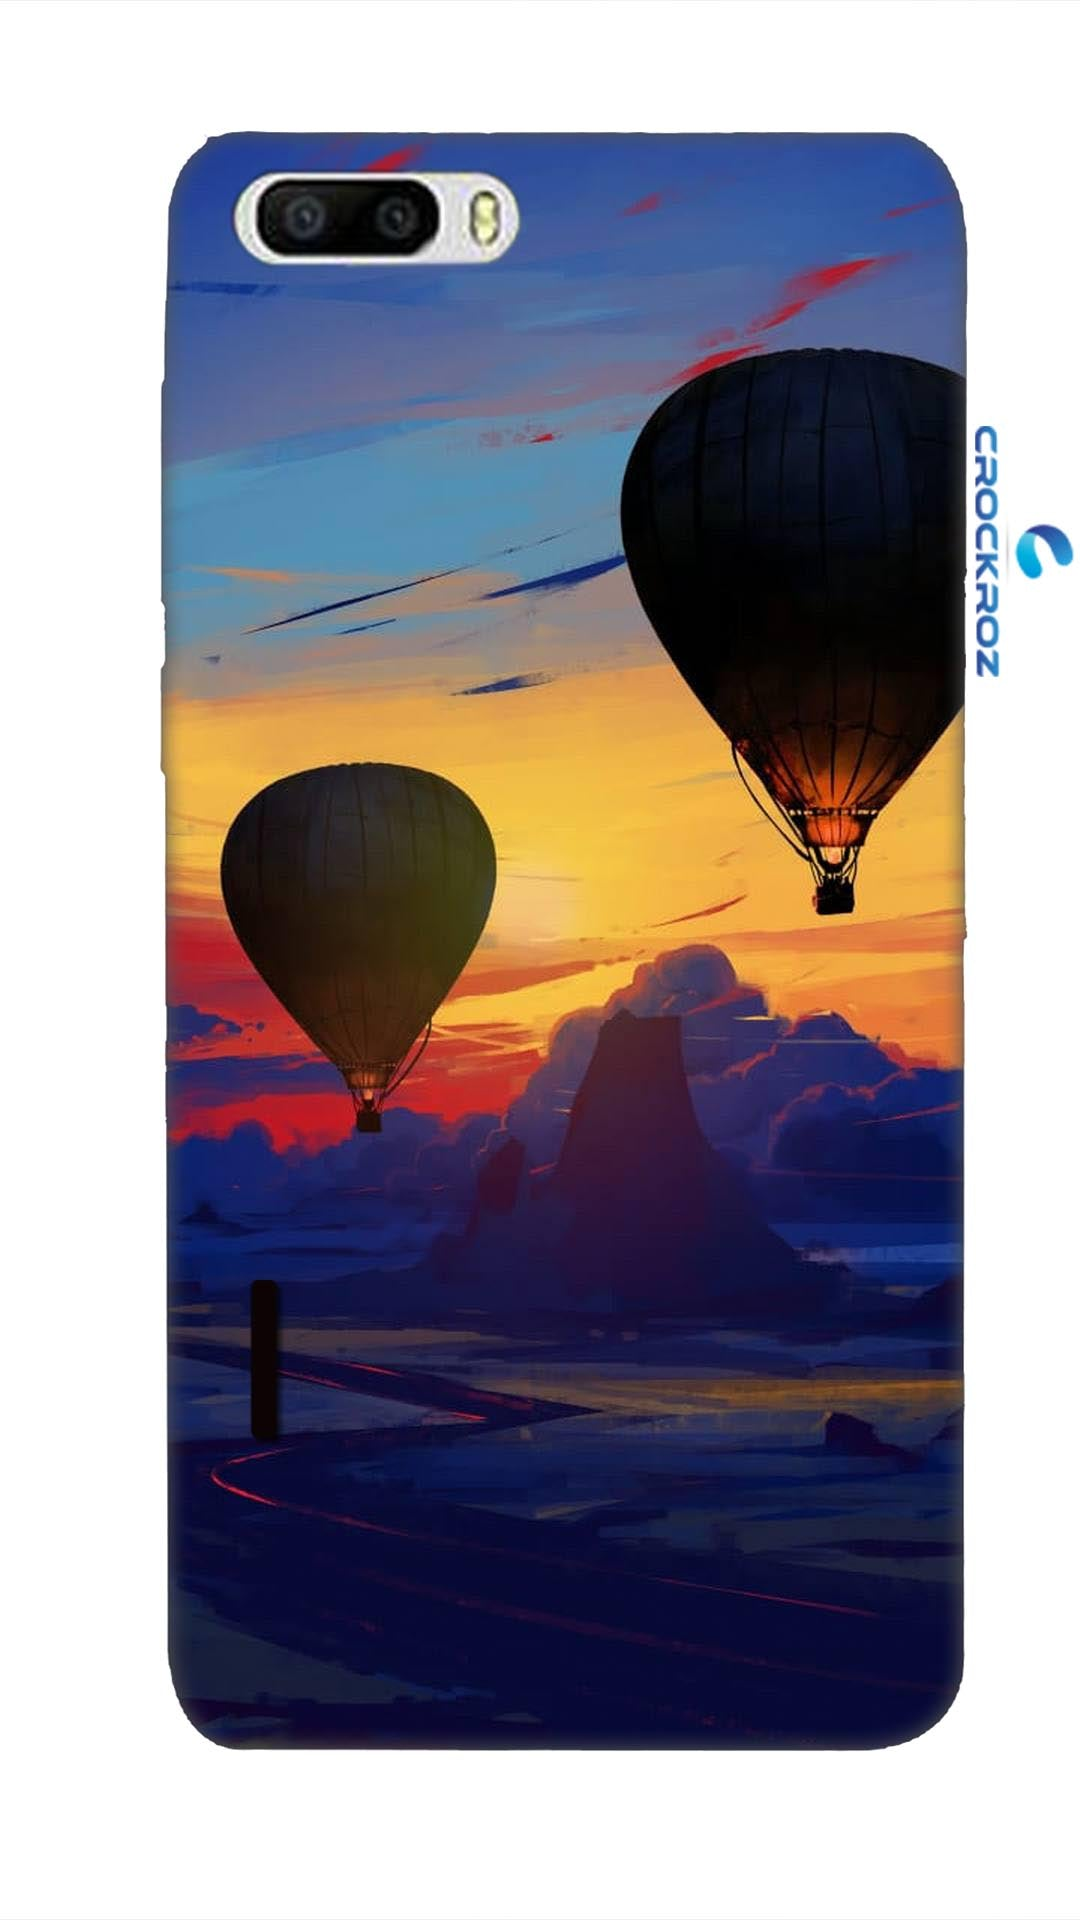 Honor 6 Plus Parachute Designed Back Cover